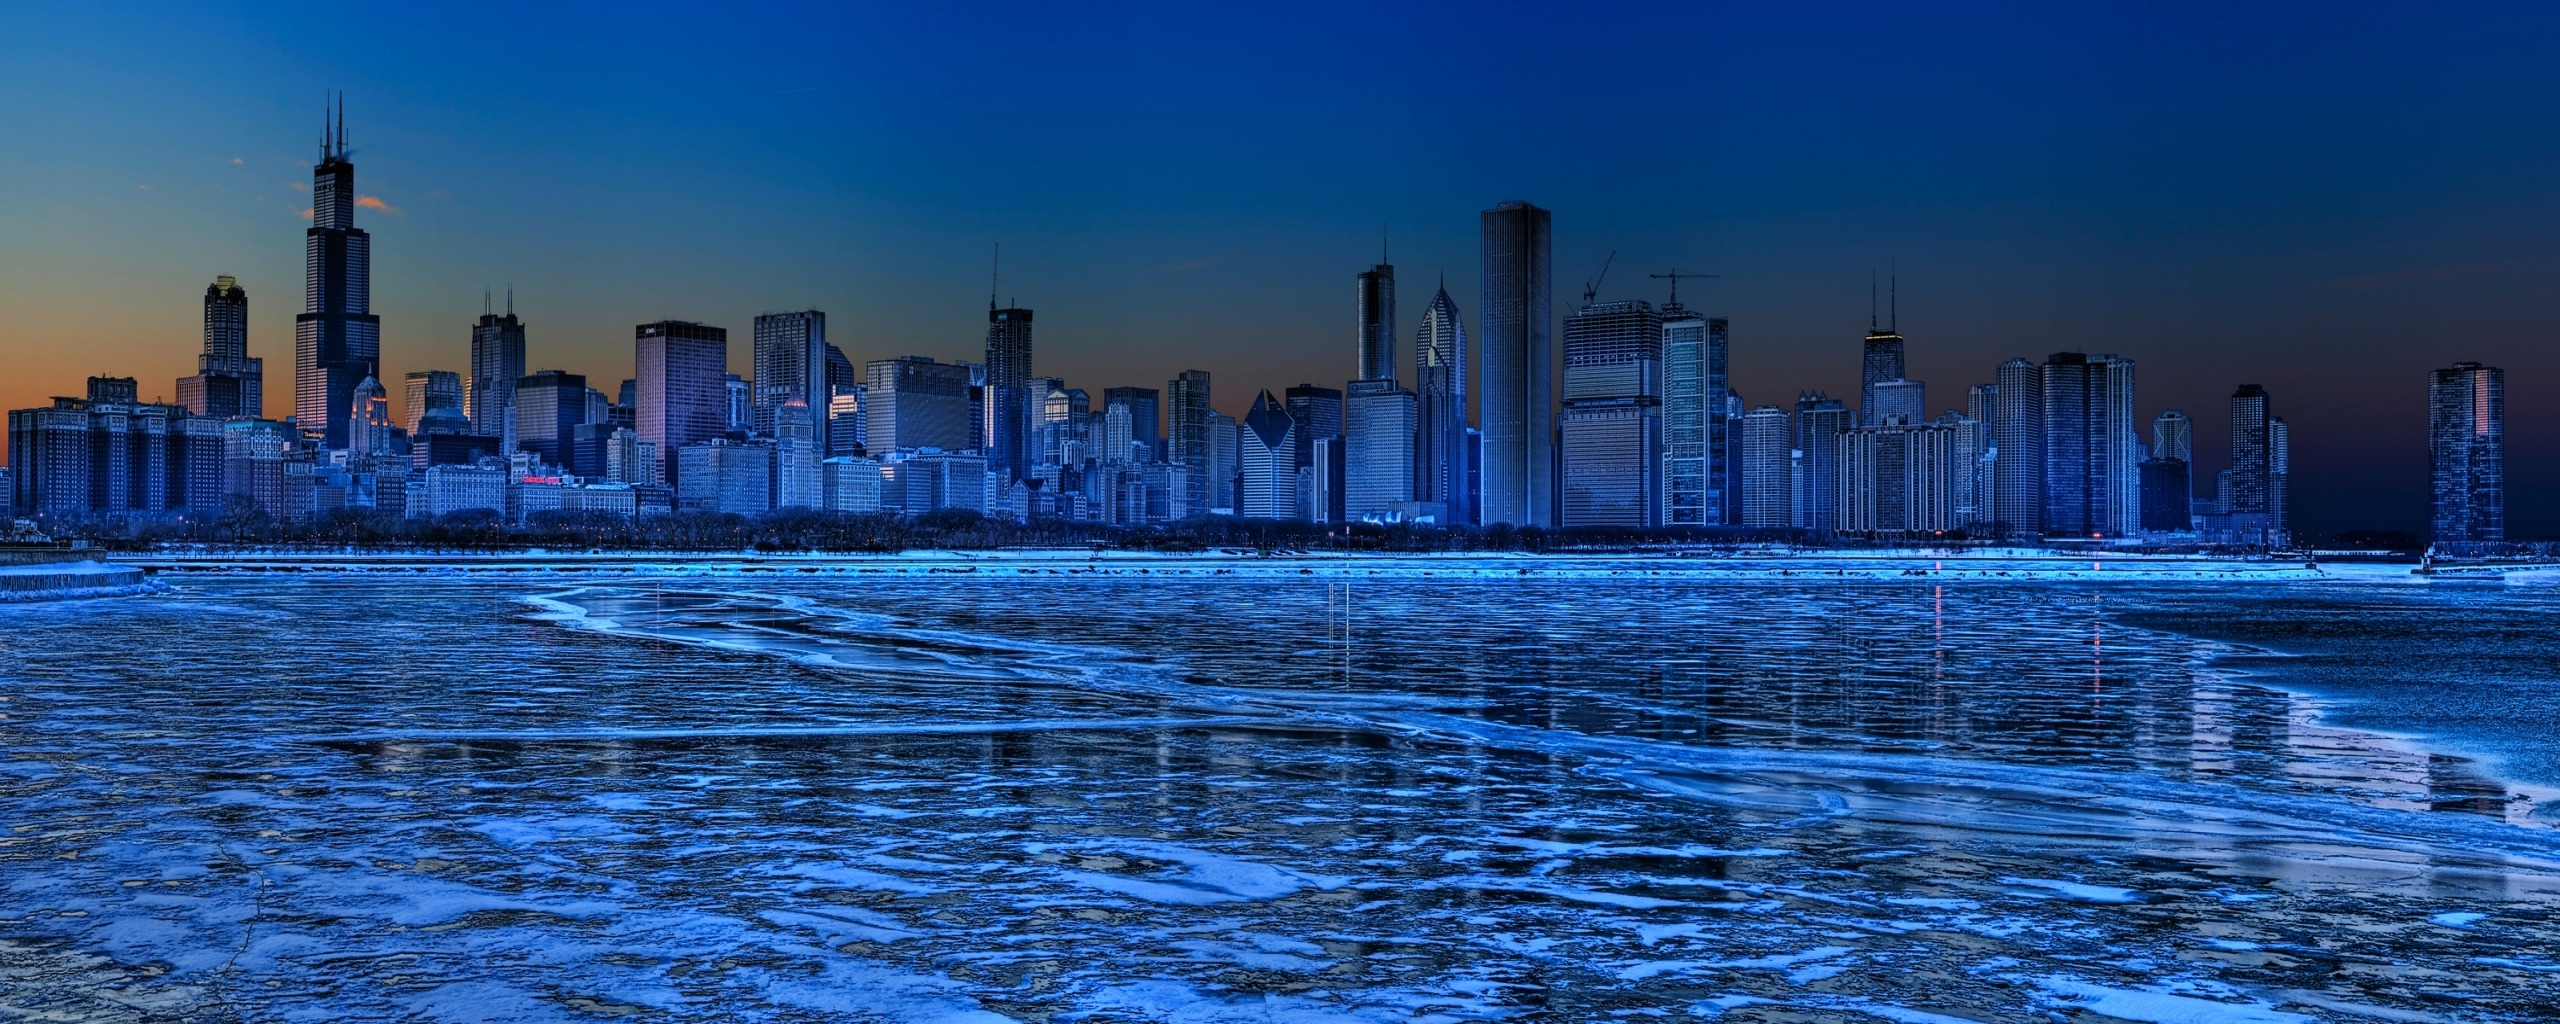 chicago dual monitor wallpapers | hd wallpapers | id #8227